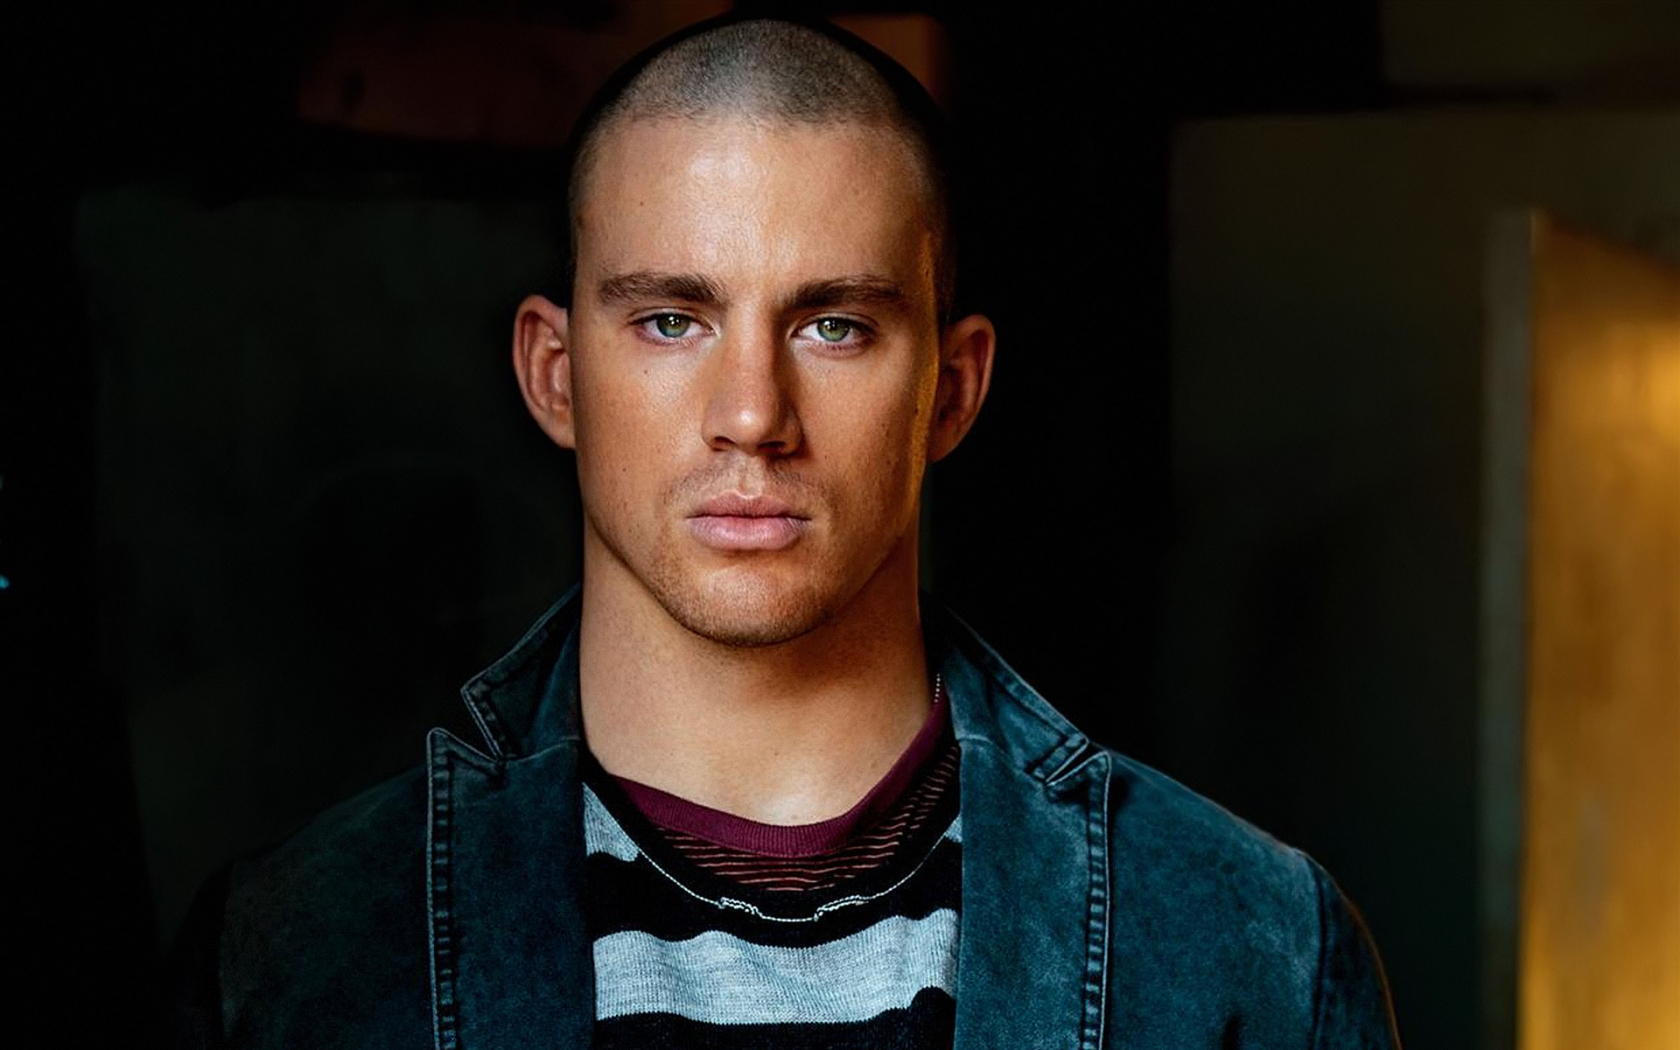 Channing Tatum Beautiful Eyes for 1680 x 1050 widescreen resolution